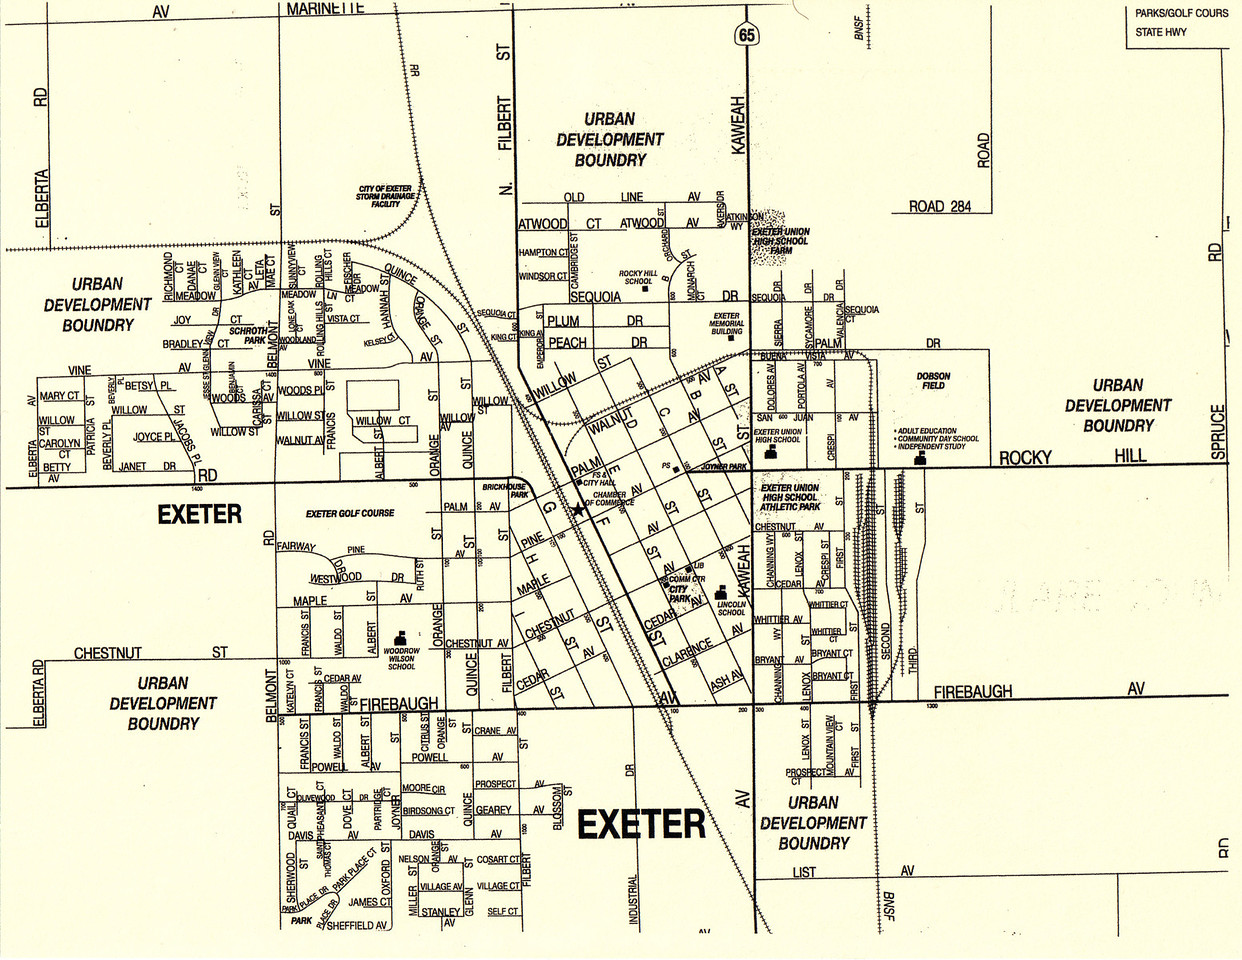 In the Historic Downtown section of the City of Exeter, which is centered around E Street & Pine Street; Pine Street is the North and South boundary for streets A-I that run NW and SE, and F street is the East and West boundary for streets that run NE and SW.  The map is oriented in a Top to Bottom, North to South fashion.